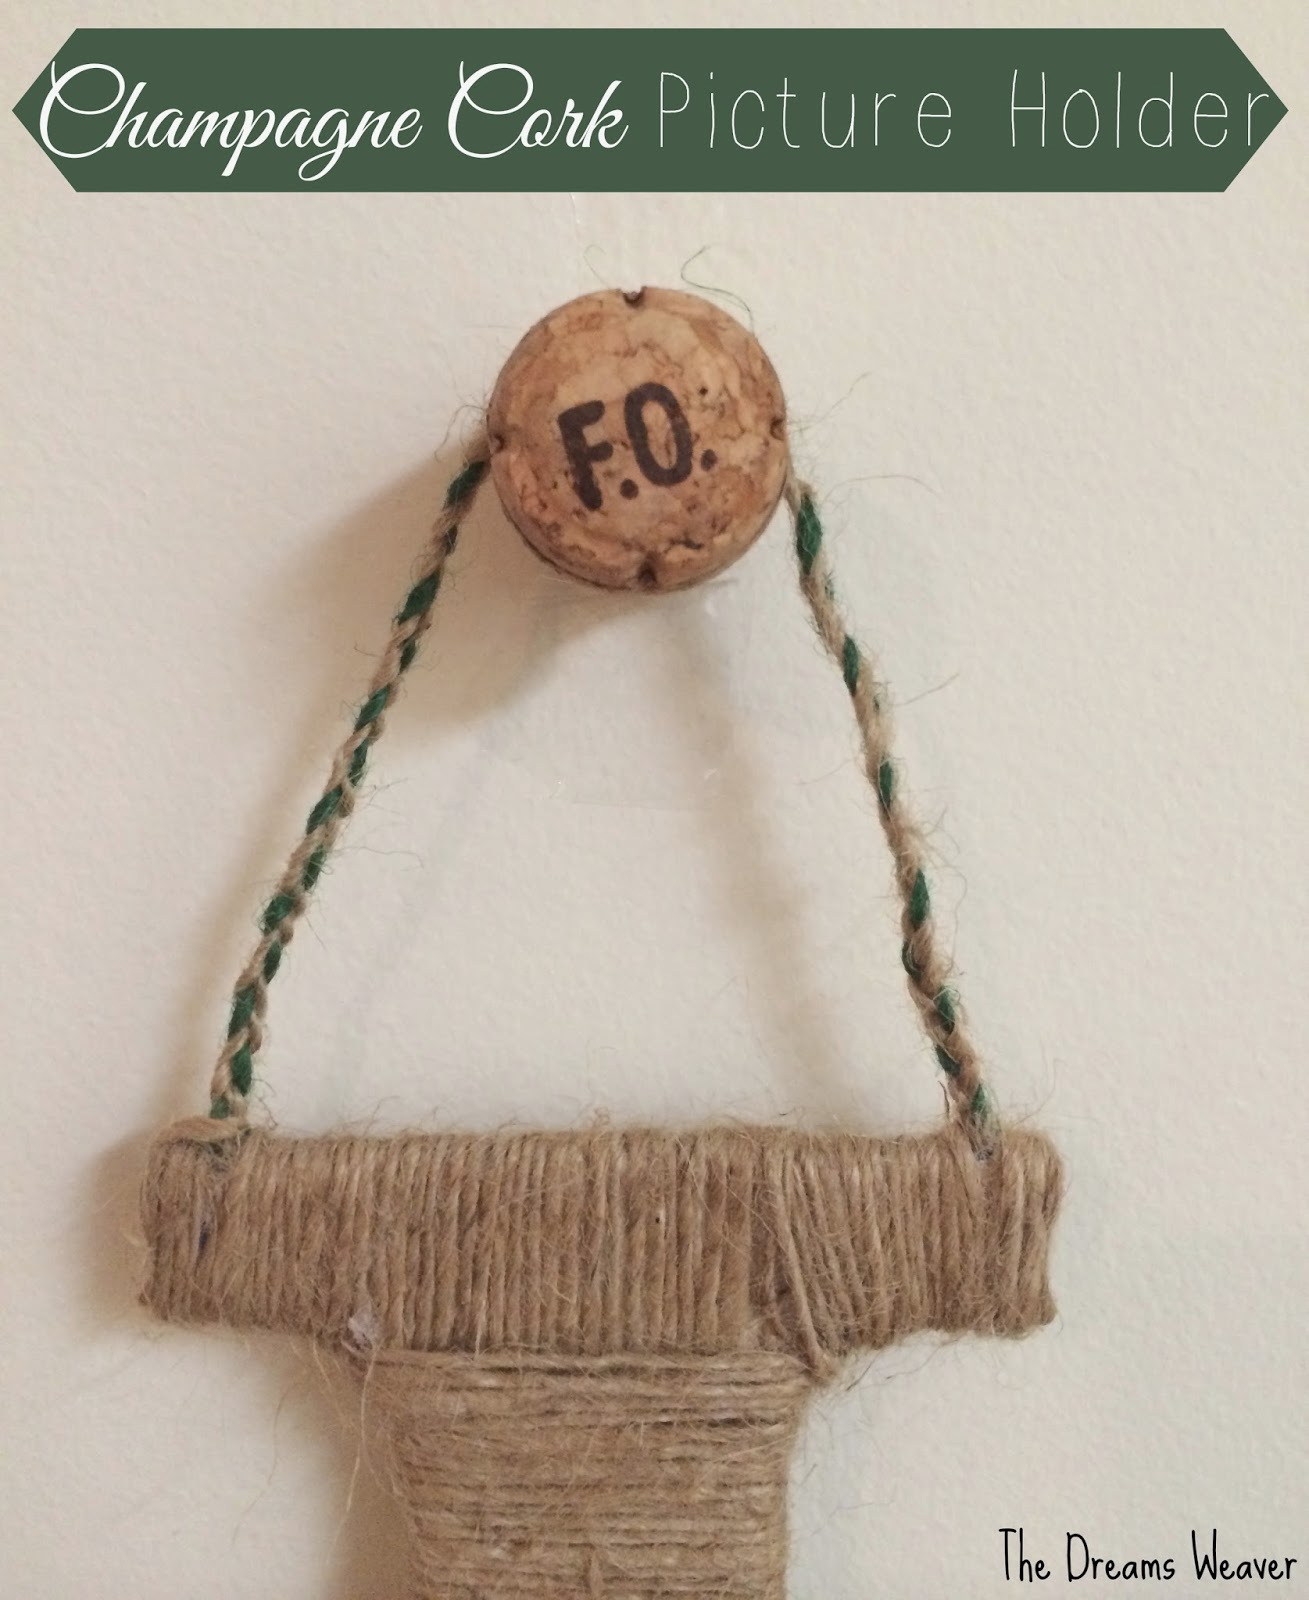 Champagne Cork Picture Holder~ The Dreams Weaver